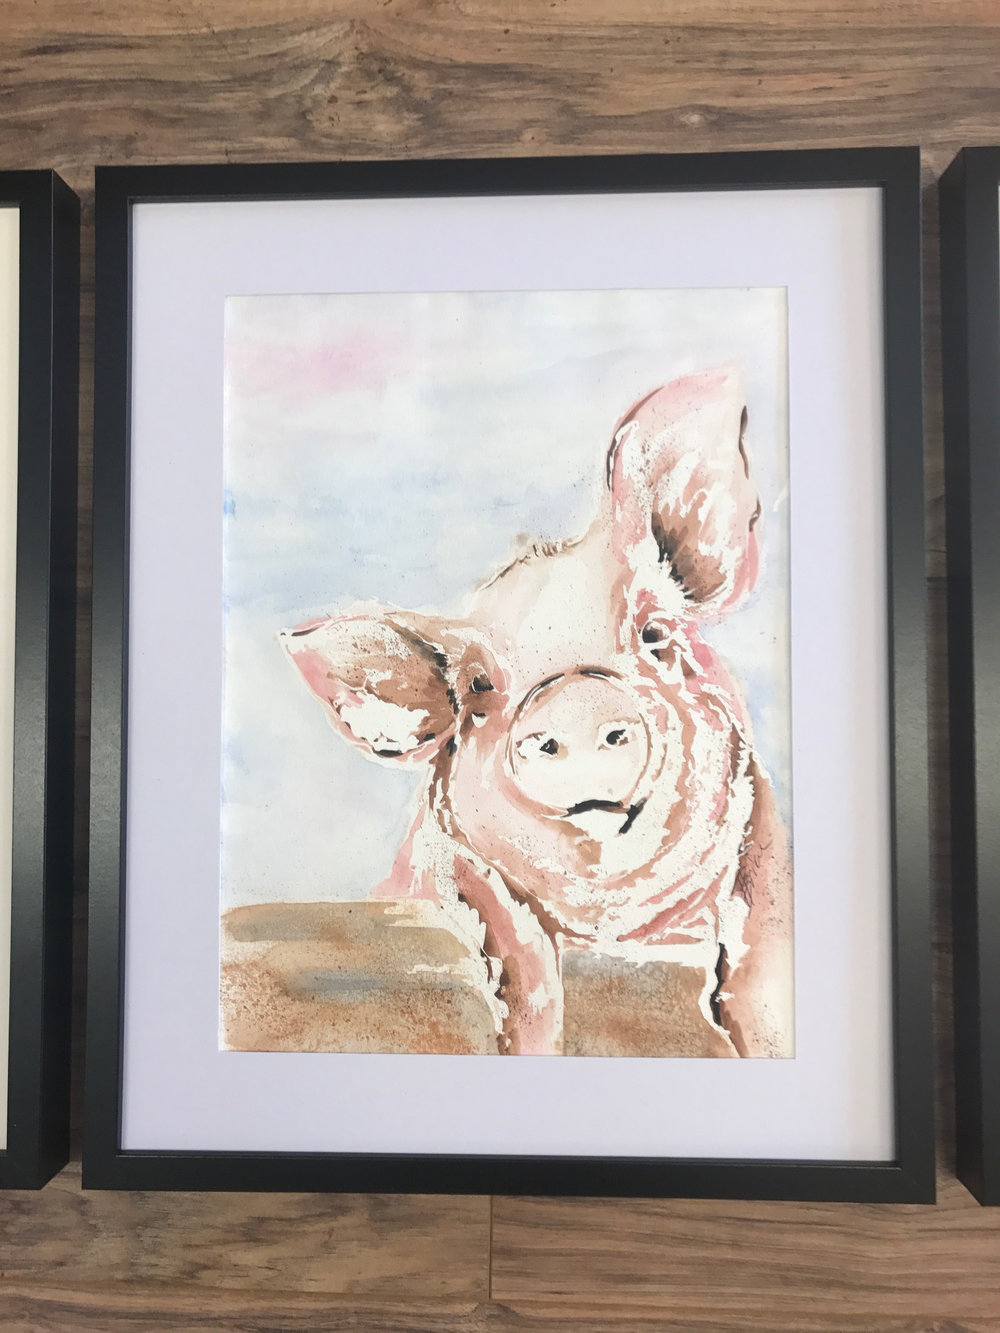 On the Farm Series - Pig